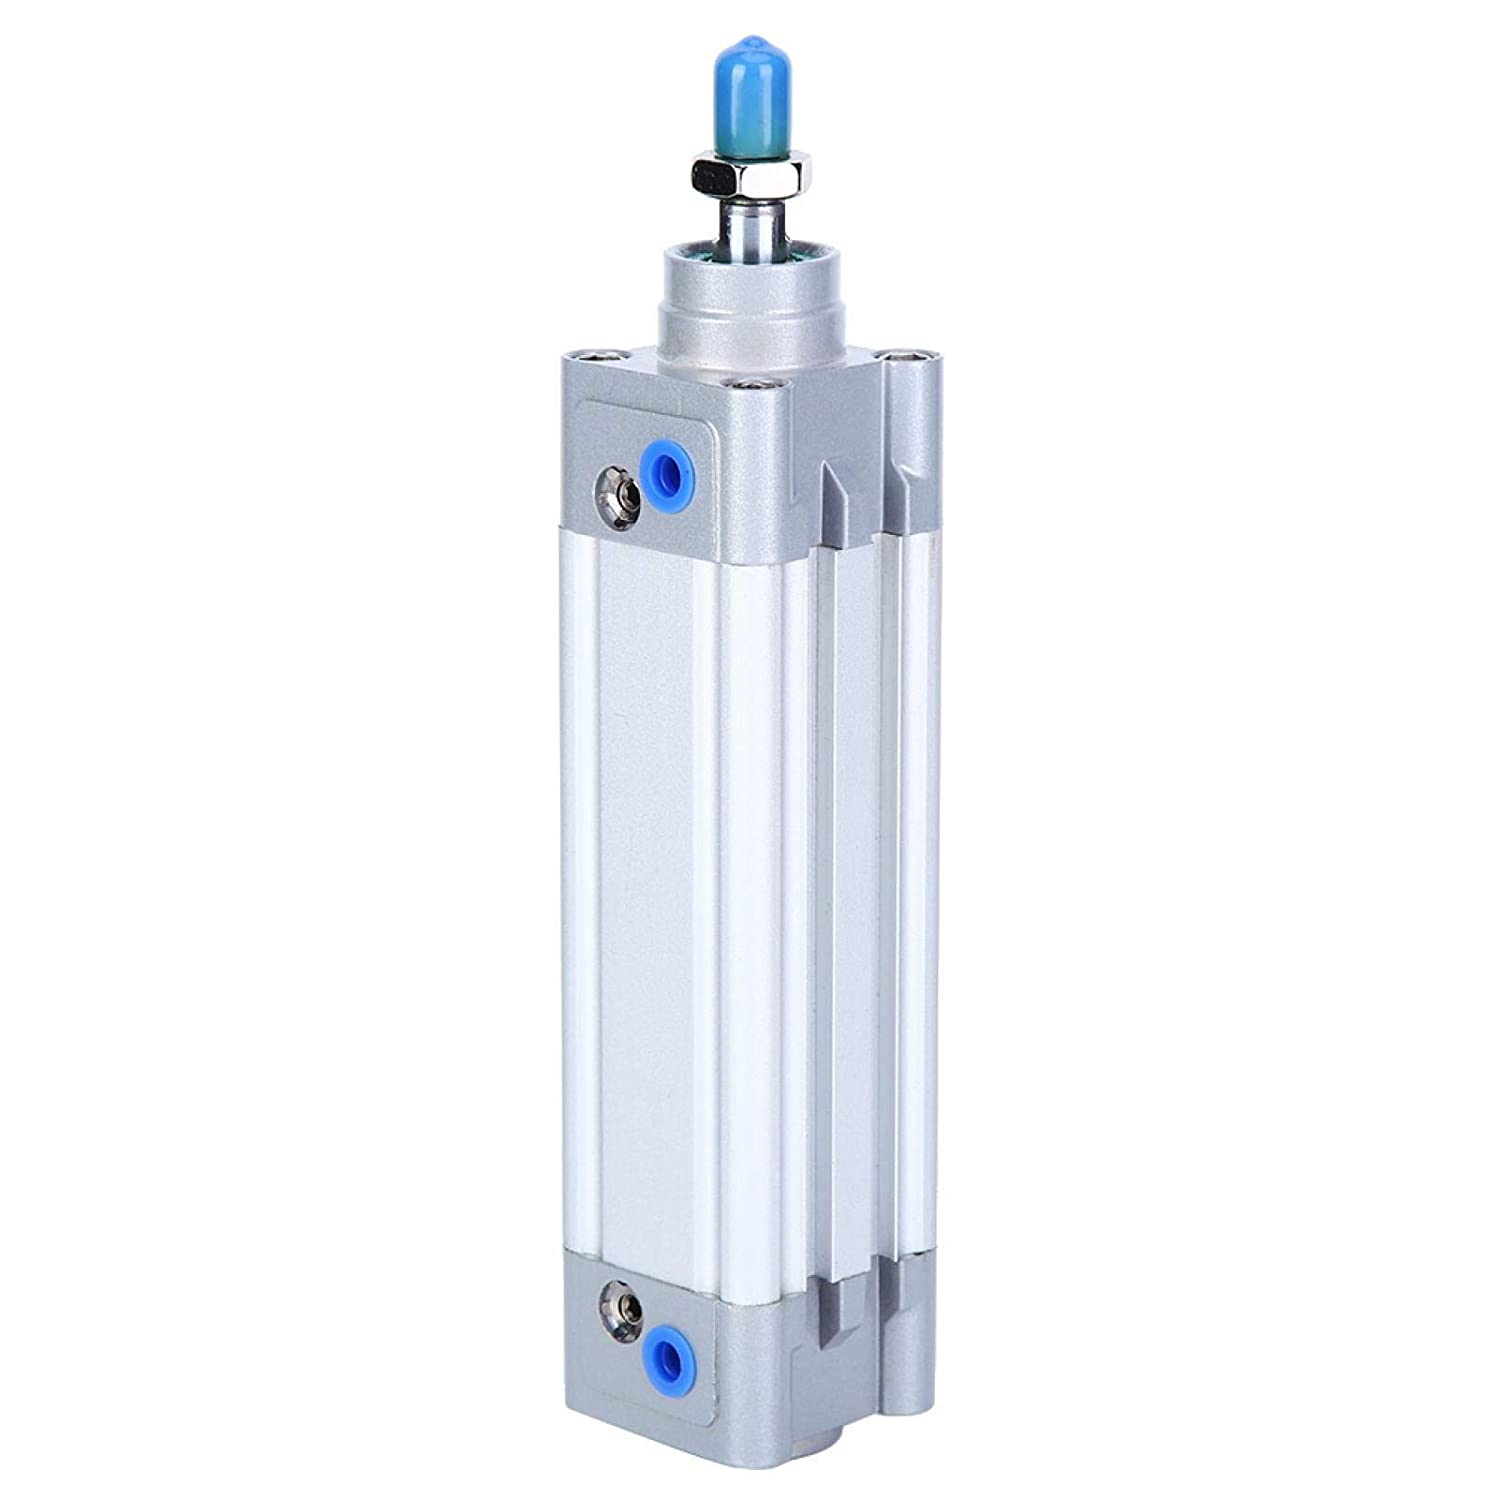 Resistance Max 63% OFF Pneumatic Max 73% OFF Componets Standard Cylinder DNC32